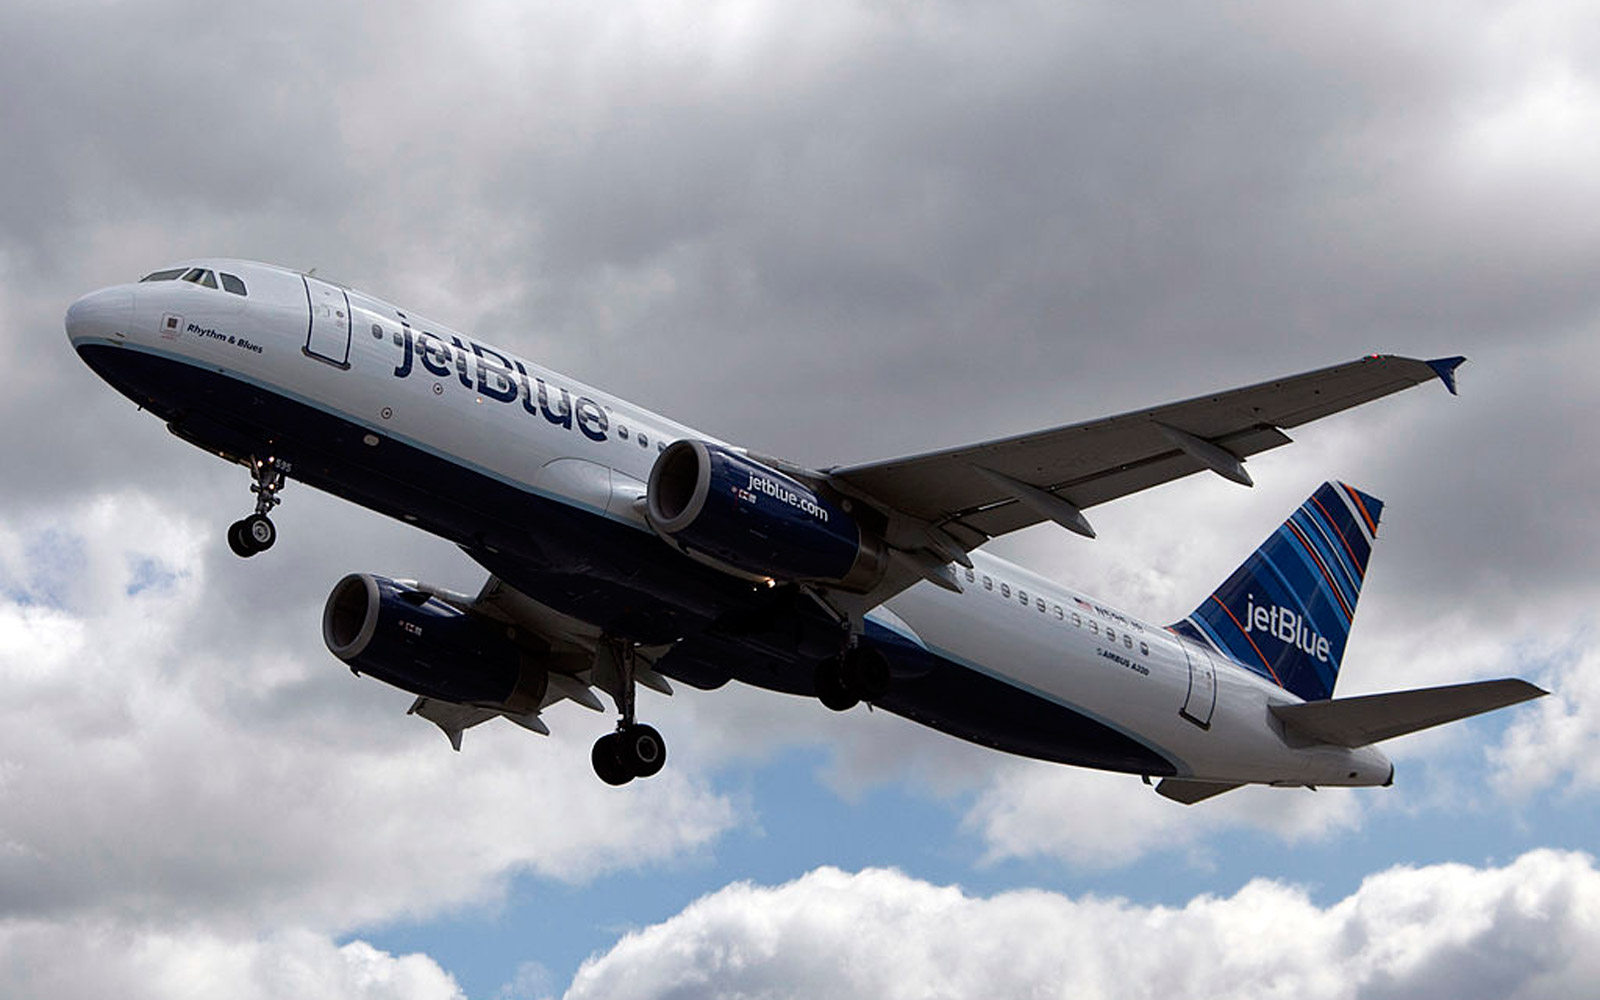 NEW YORK, NY - APRIL 27: A JetBlue plane is seen at John F. Kennedy International Airport April 27, 2012 in the Queens borough of New York City.